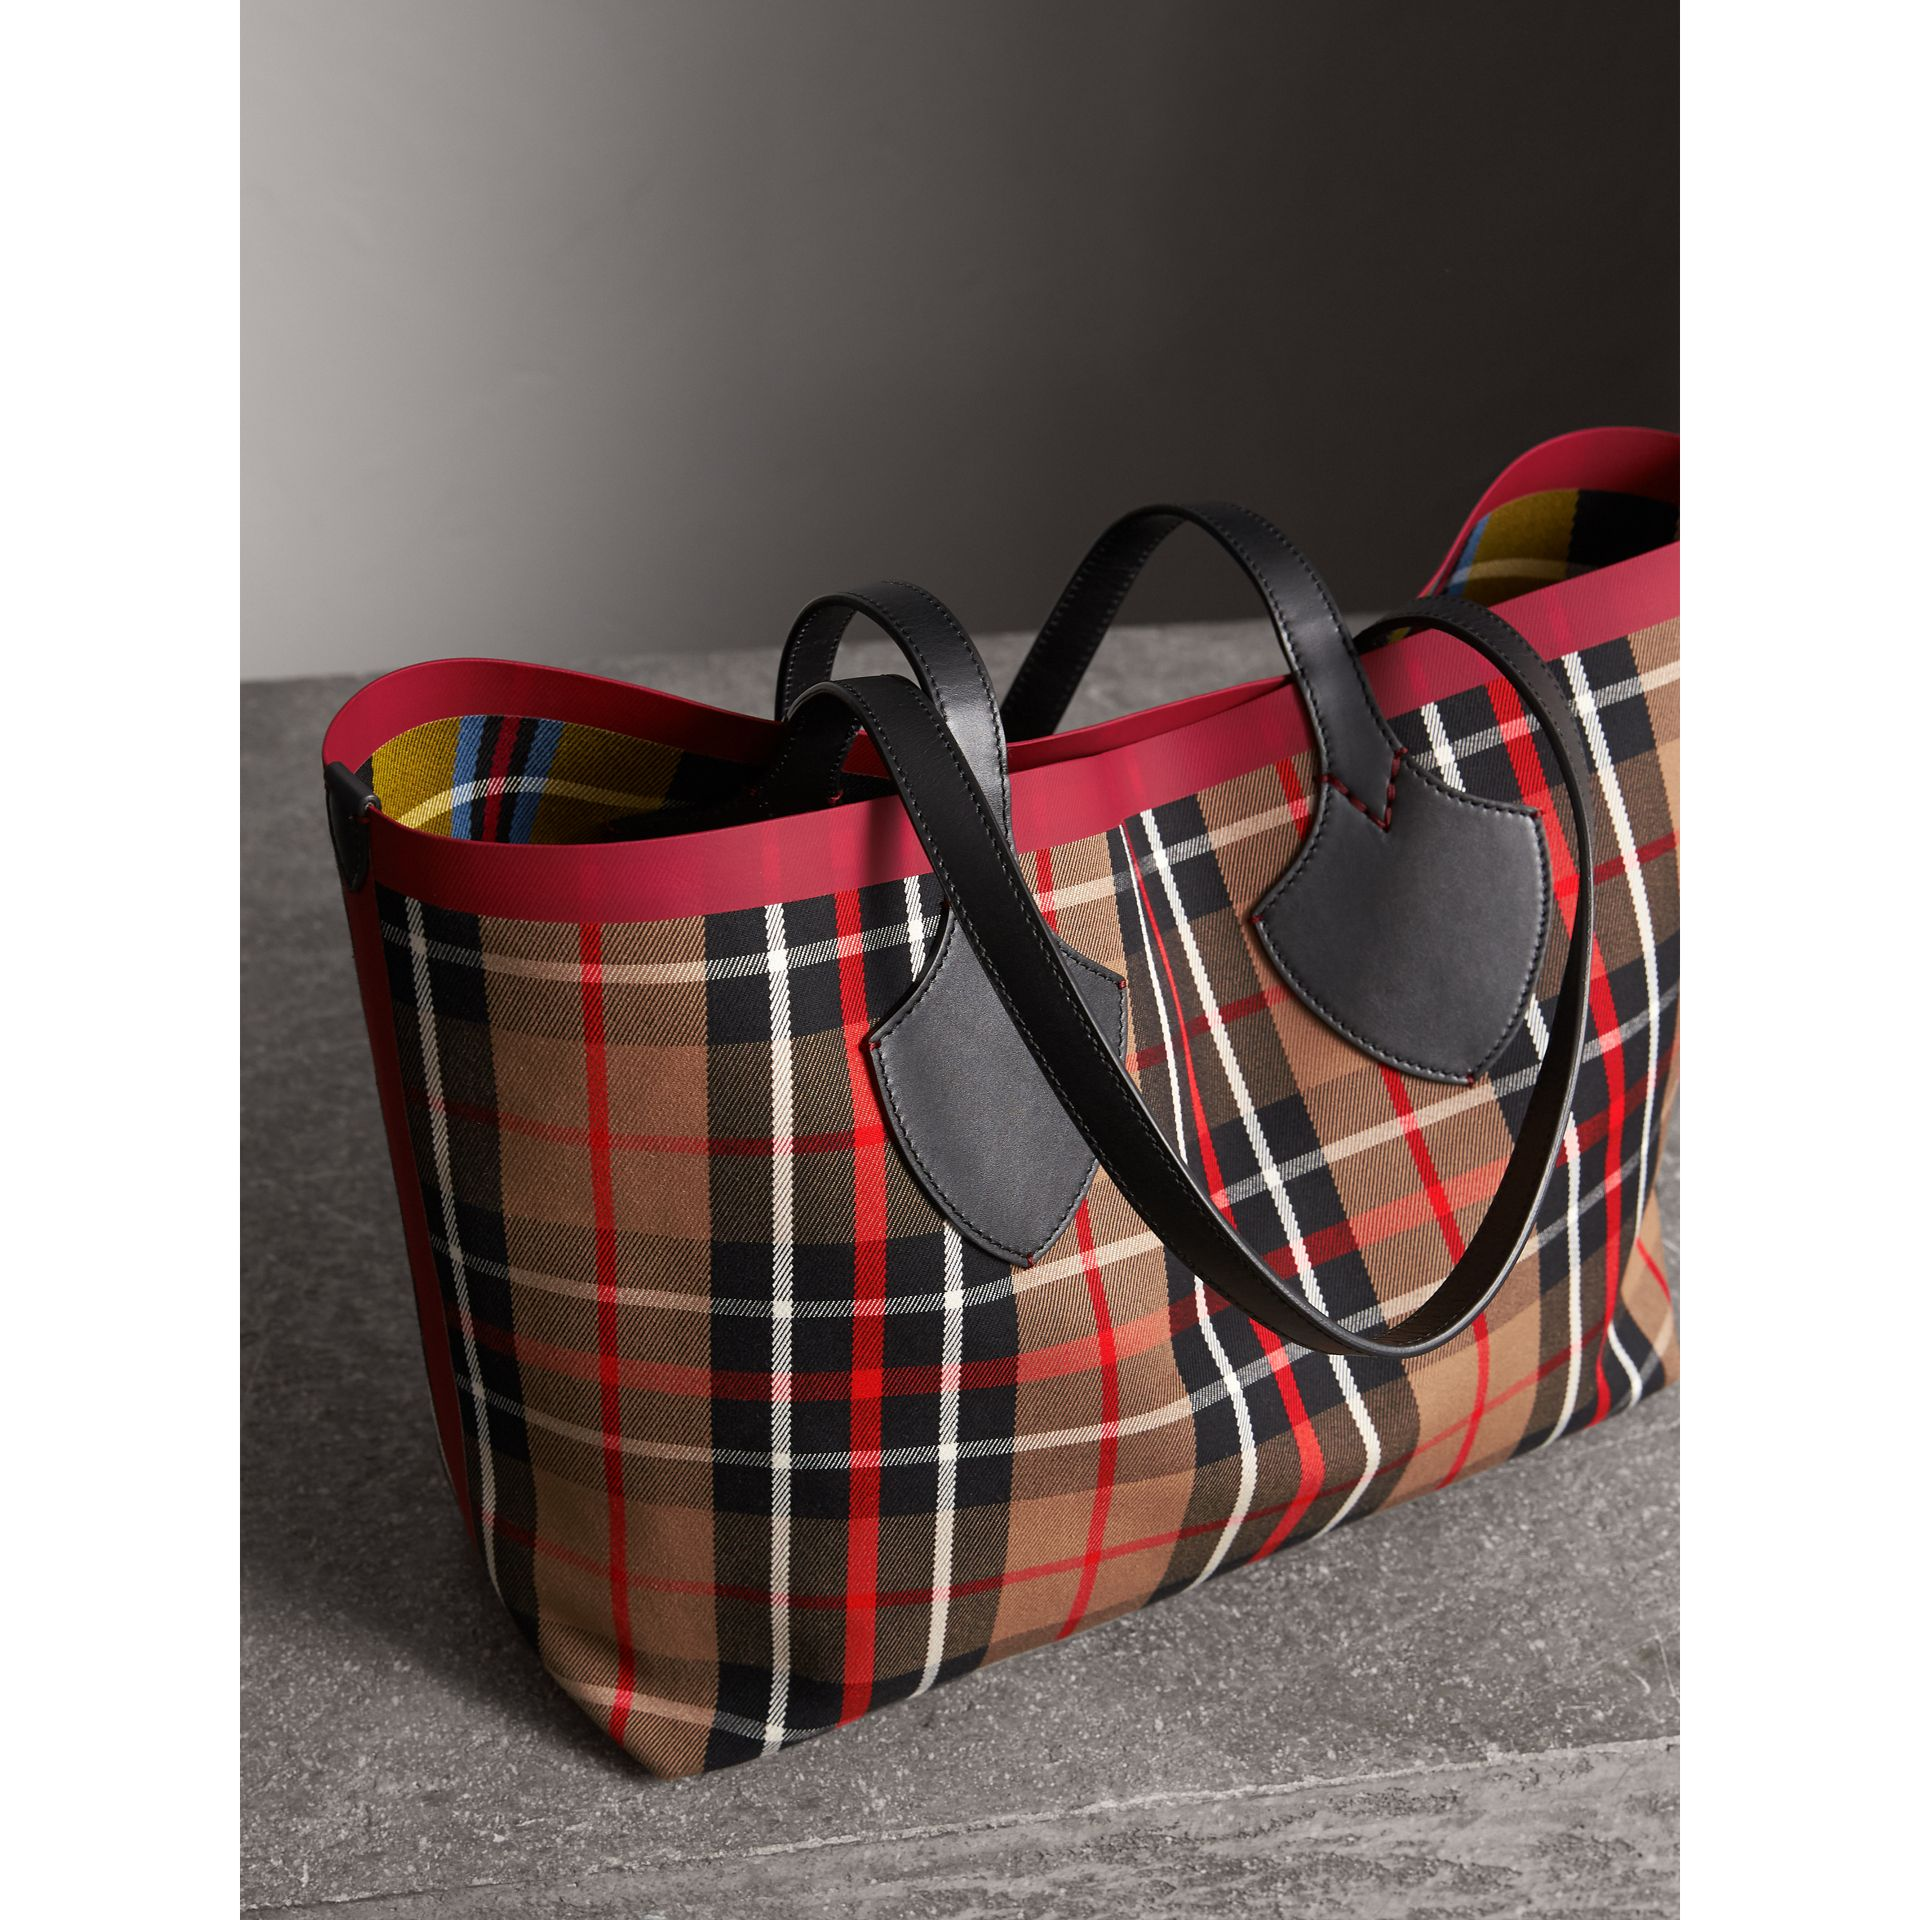 Borsa tote The Giant media double face in cotone con motivo tartan (Caramello/giallo Lino) | Burberry - immagine della galleria 4